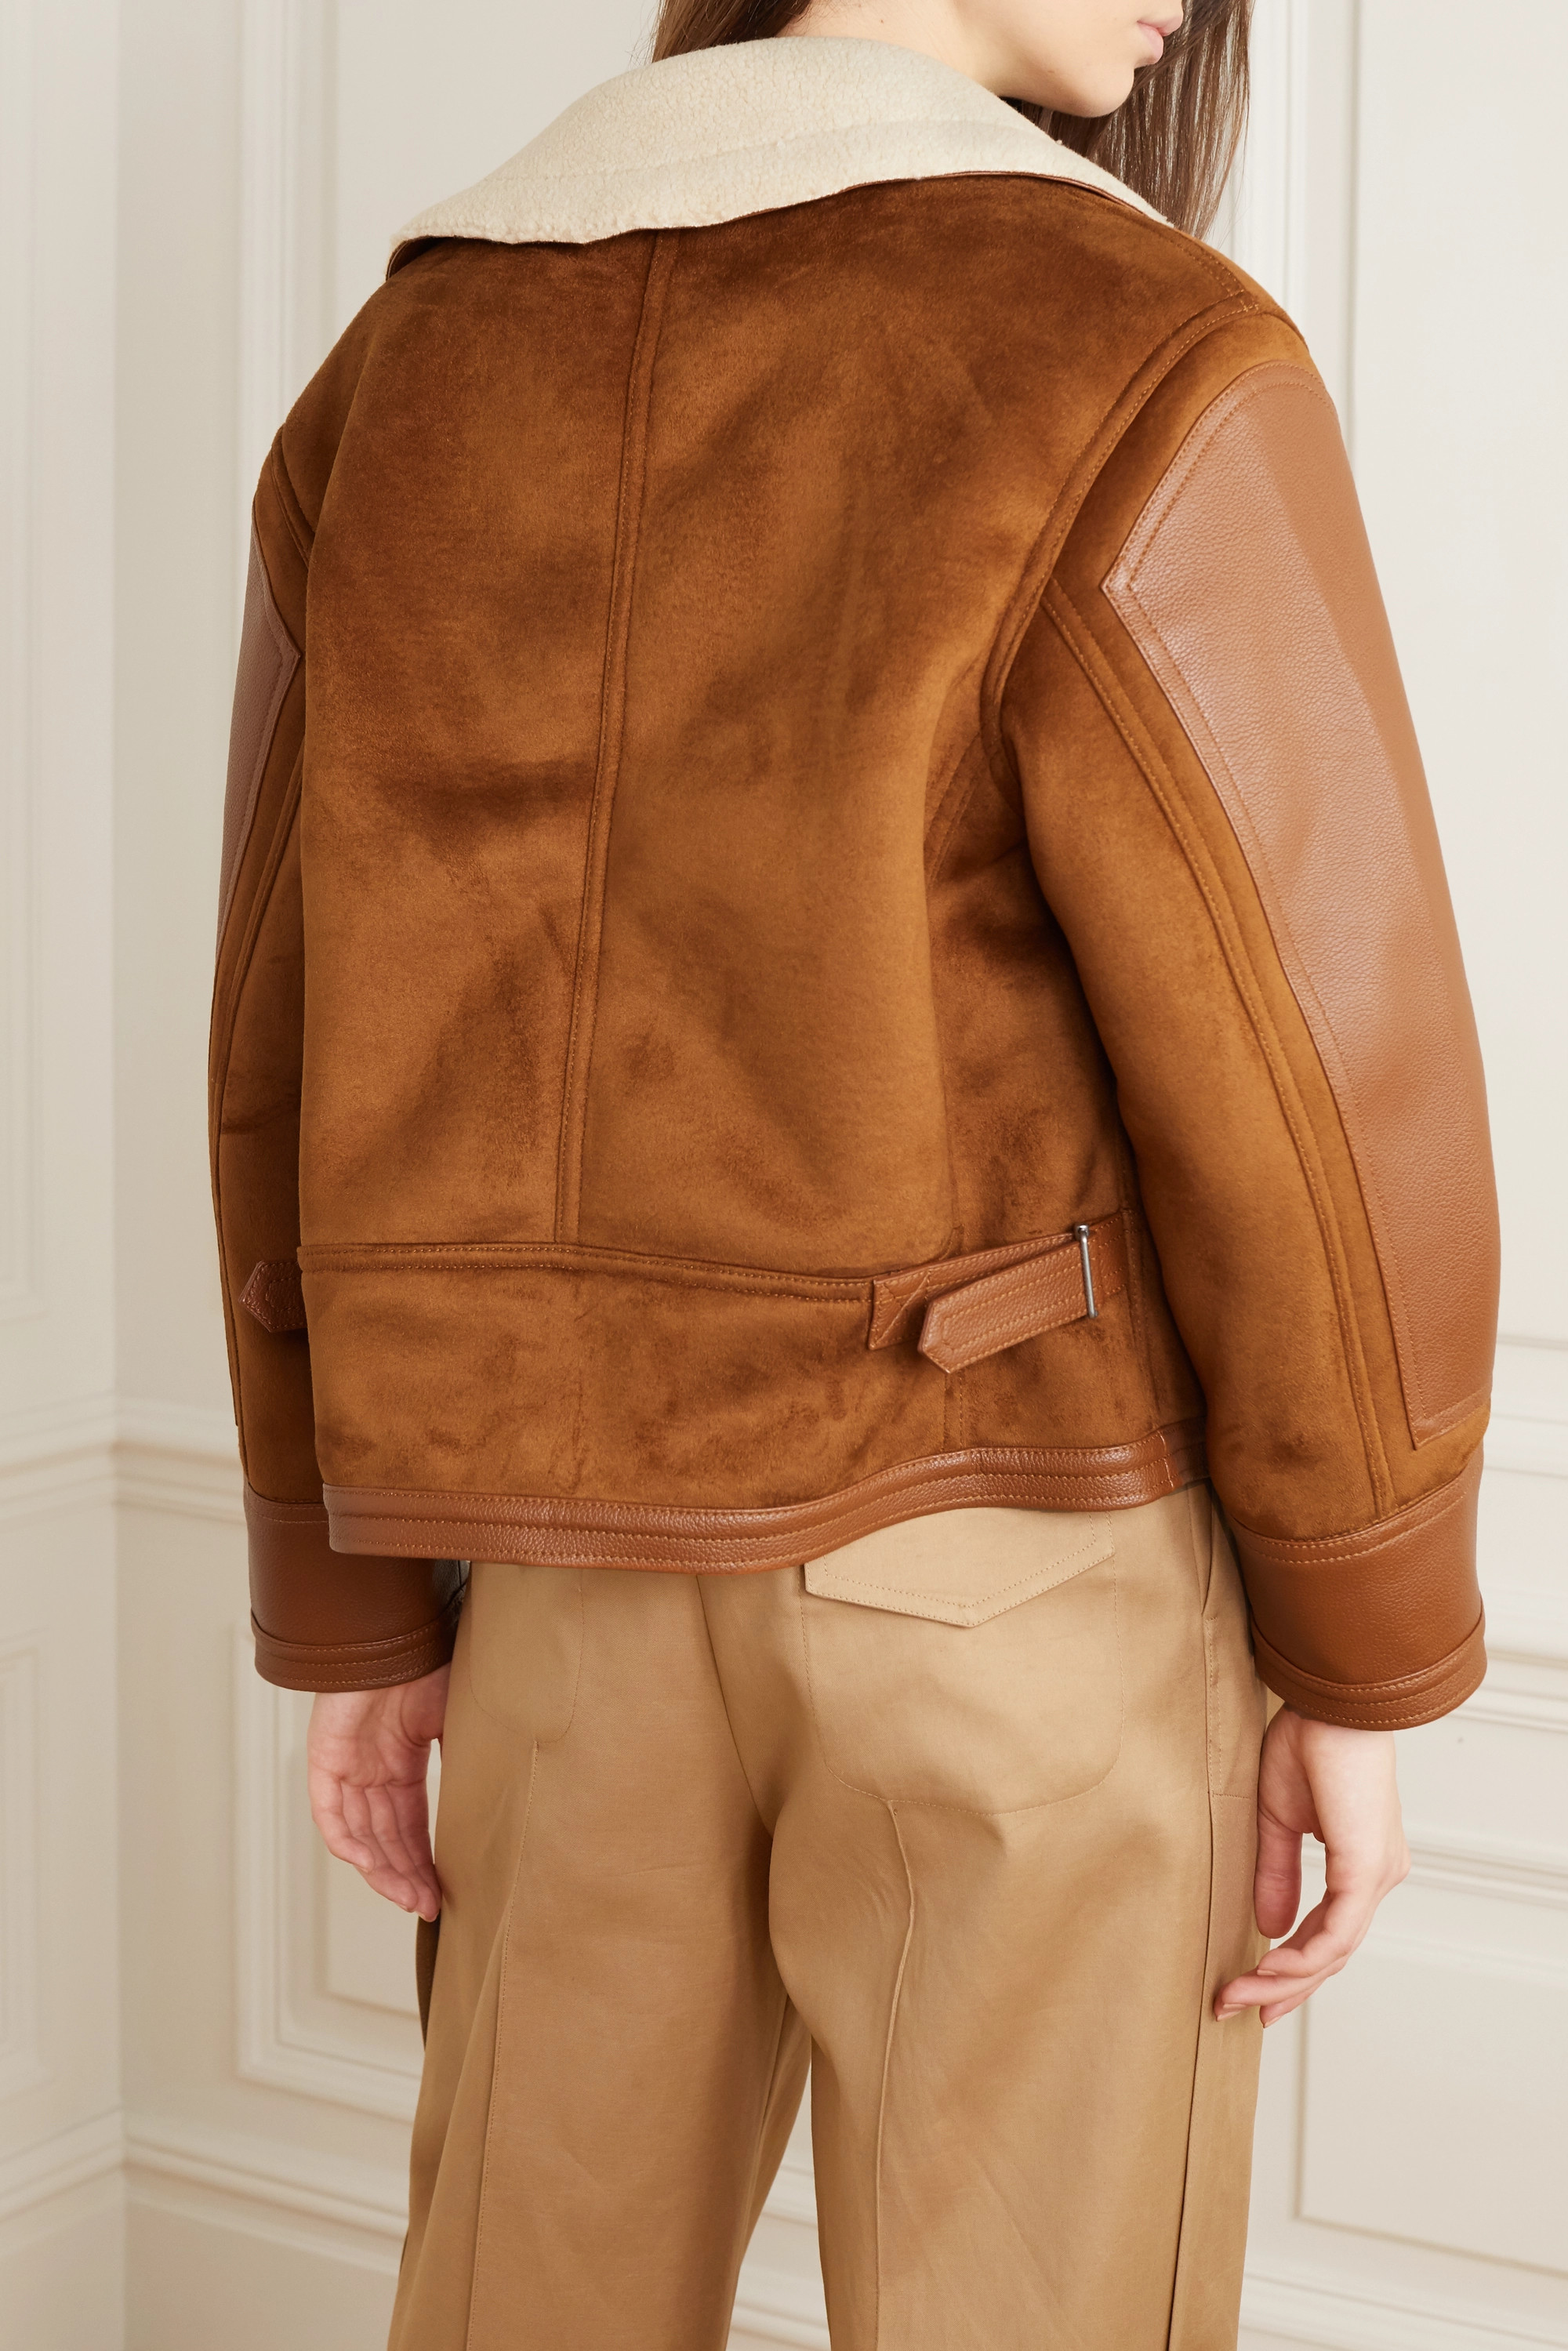 Stella McCartney Faux suede, leather and shearling jacket